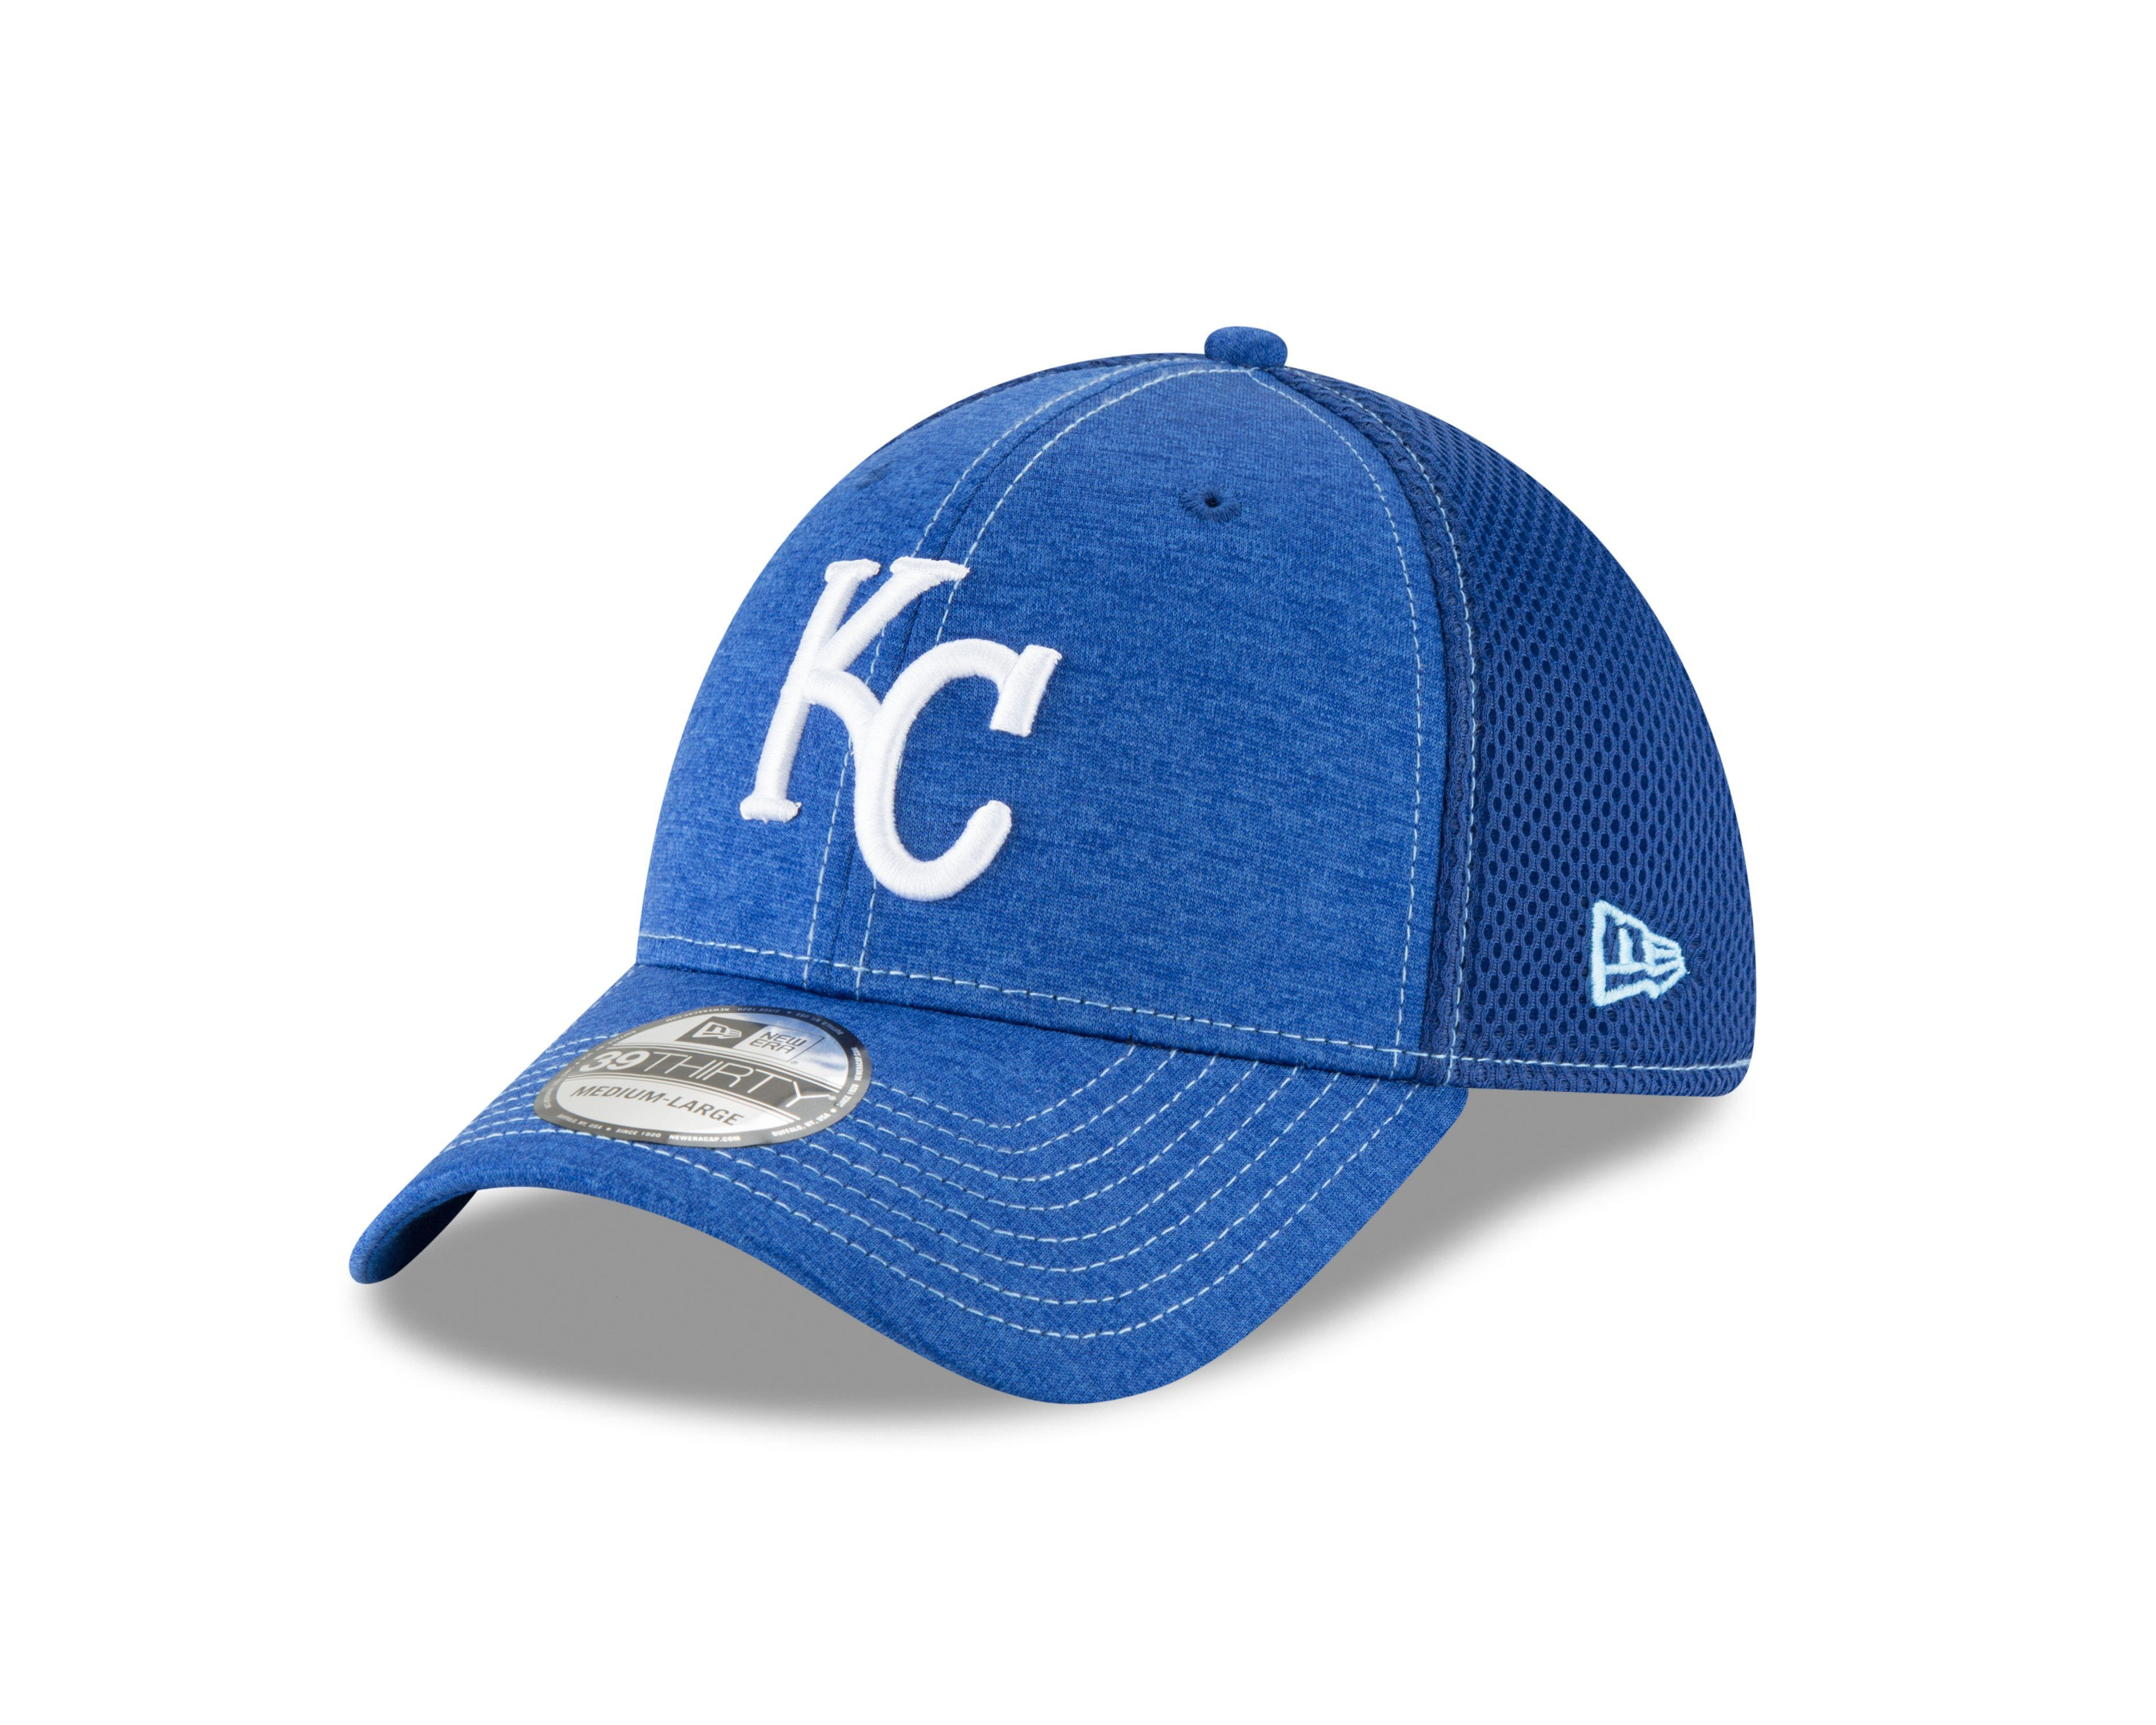 wholesale dealer 0c2f0 ec002    DUE TO OUR AGREEMENT WITH NEW ERA, WE MAY ONLY SELL THESE HATS IN STORE.  IF YOU HAVE ANY QUESTIONS PLEASE CALL US AT (816) 781-3393.